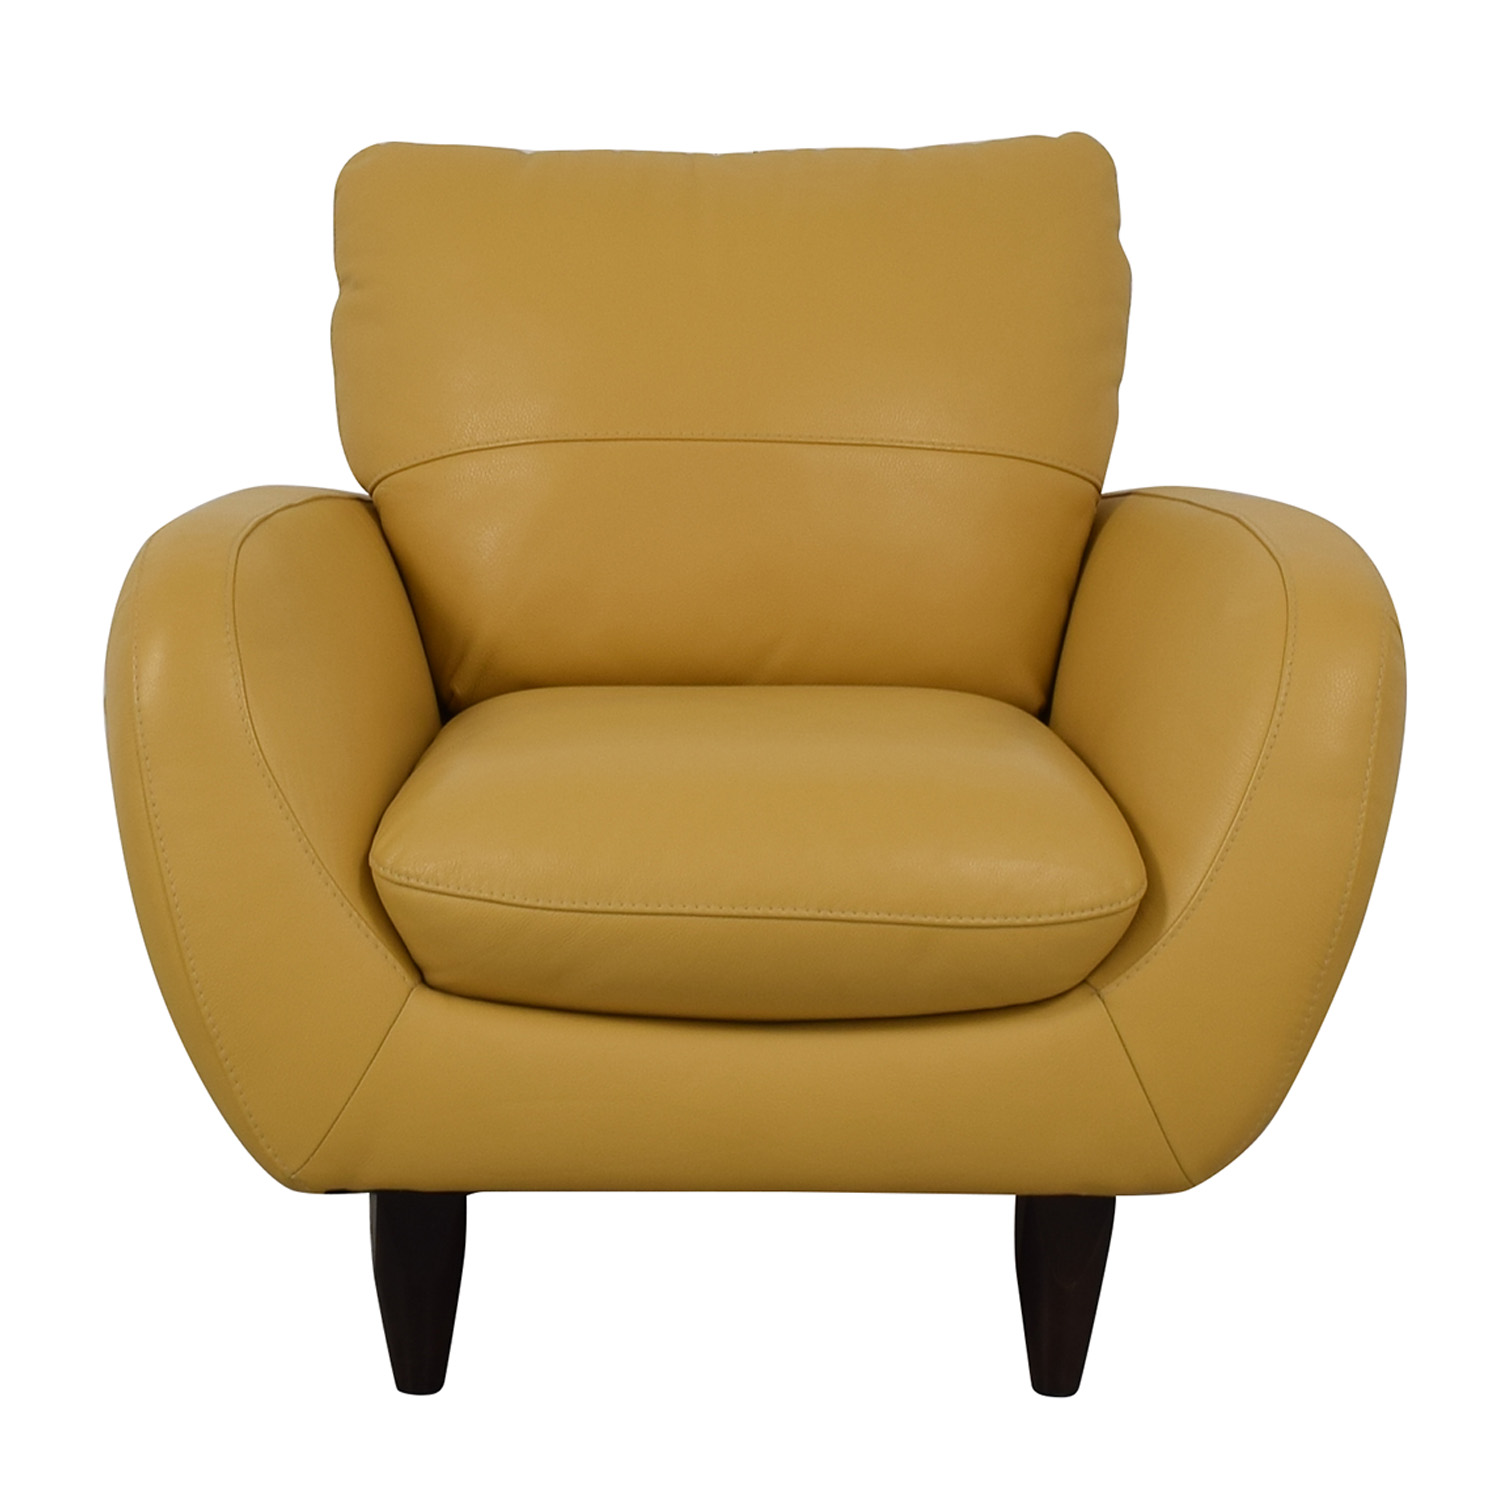 Macy's Italsofa Aquila Accent Chair sale